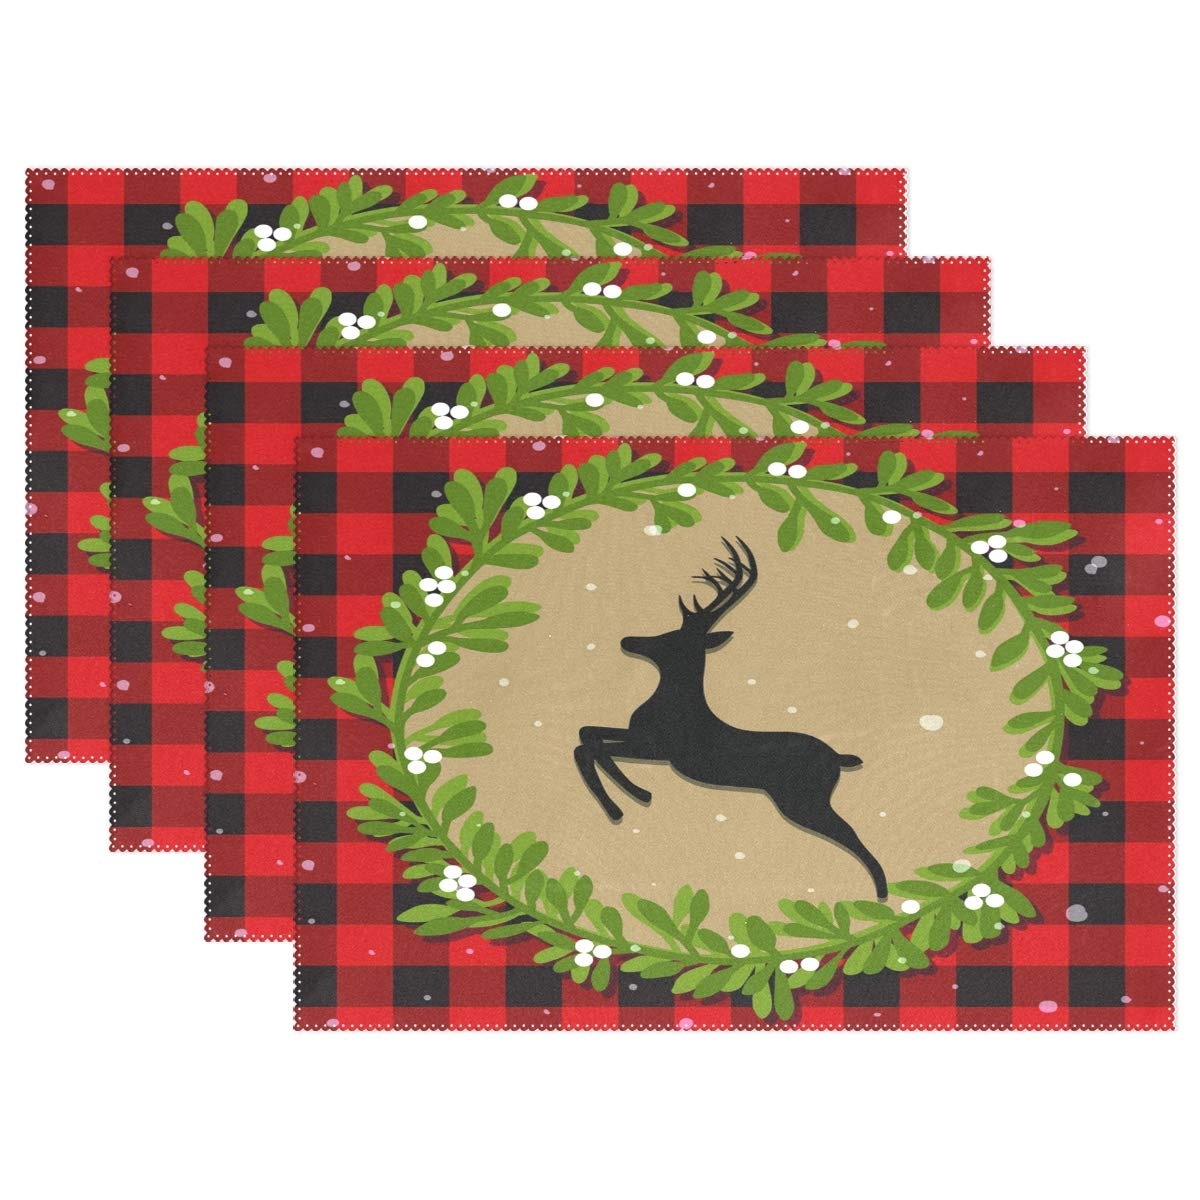 WIHVE Christmas Placemats Set of 4, Red Buffalo Plaid Check Xmas Deer Wreath Snowflake Placemats Dining Table Set Black White Buffalo Plaid Check Heat-Resistant Skid-Proof Kitchen Table Mats